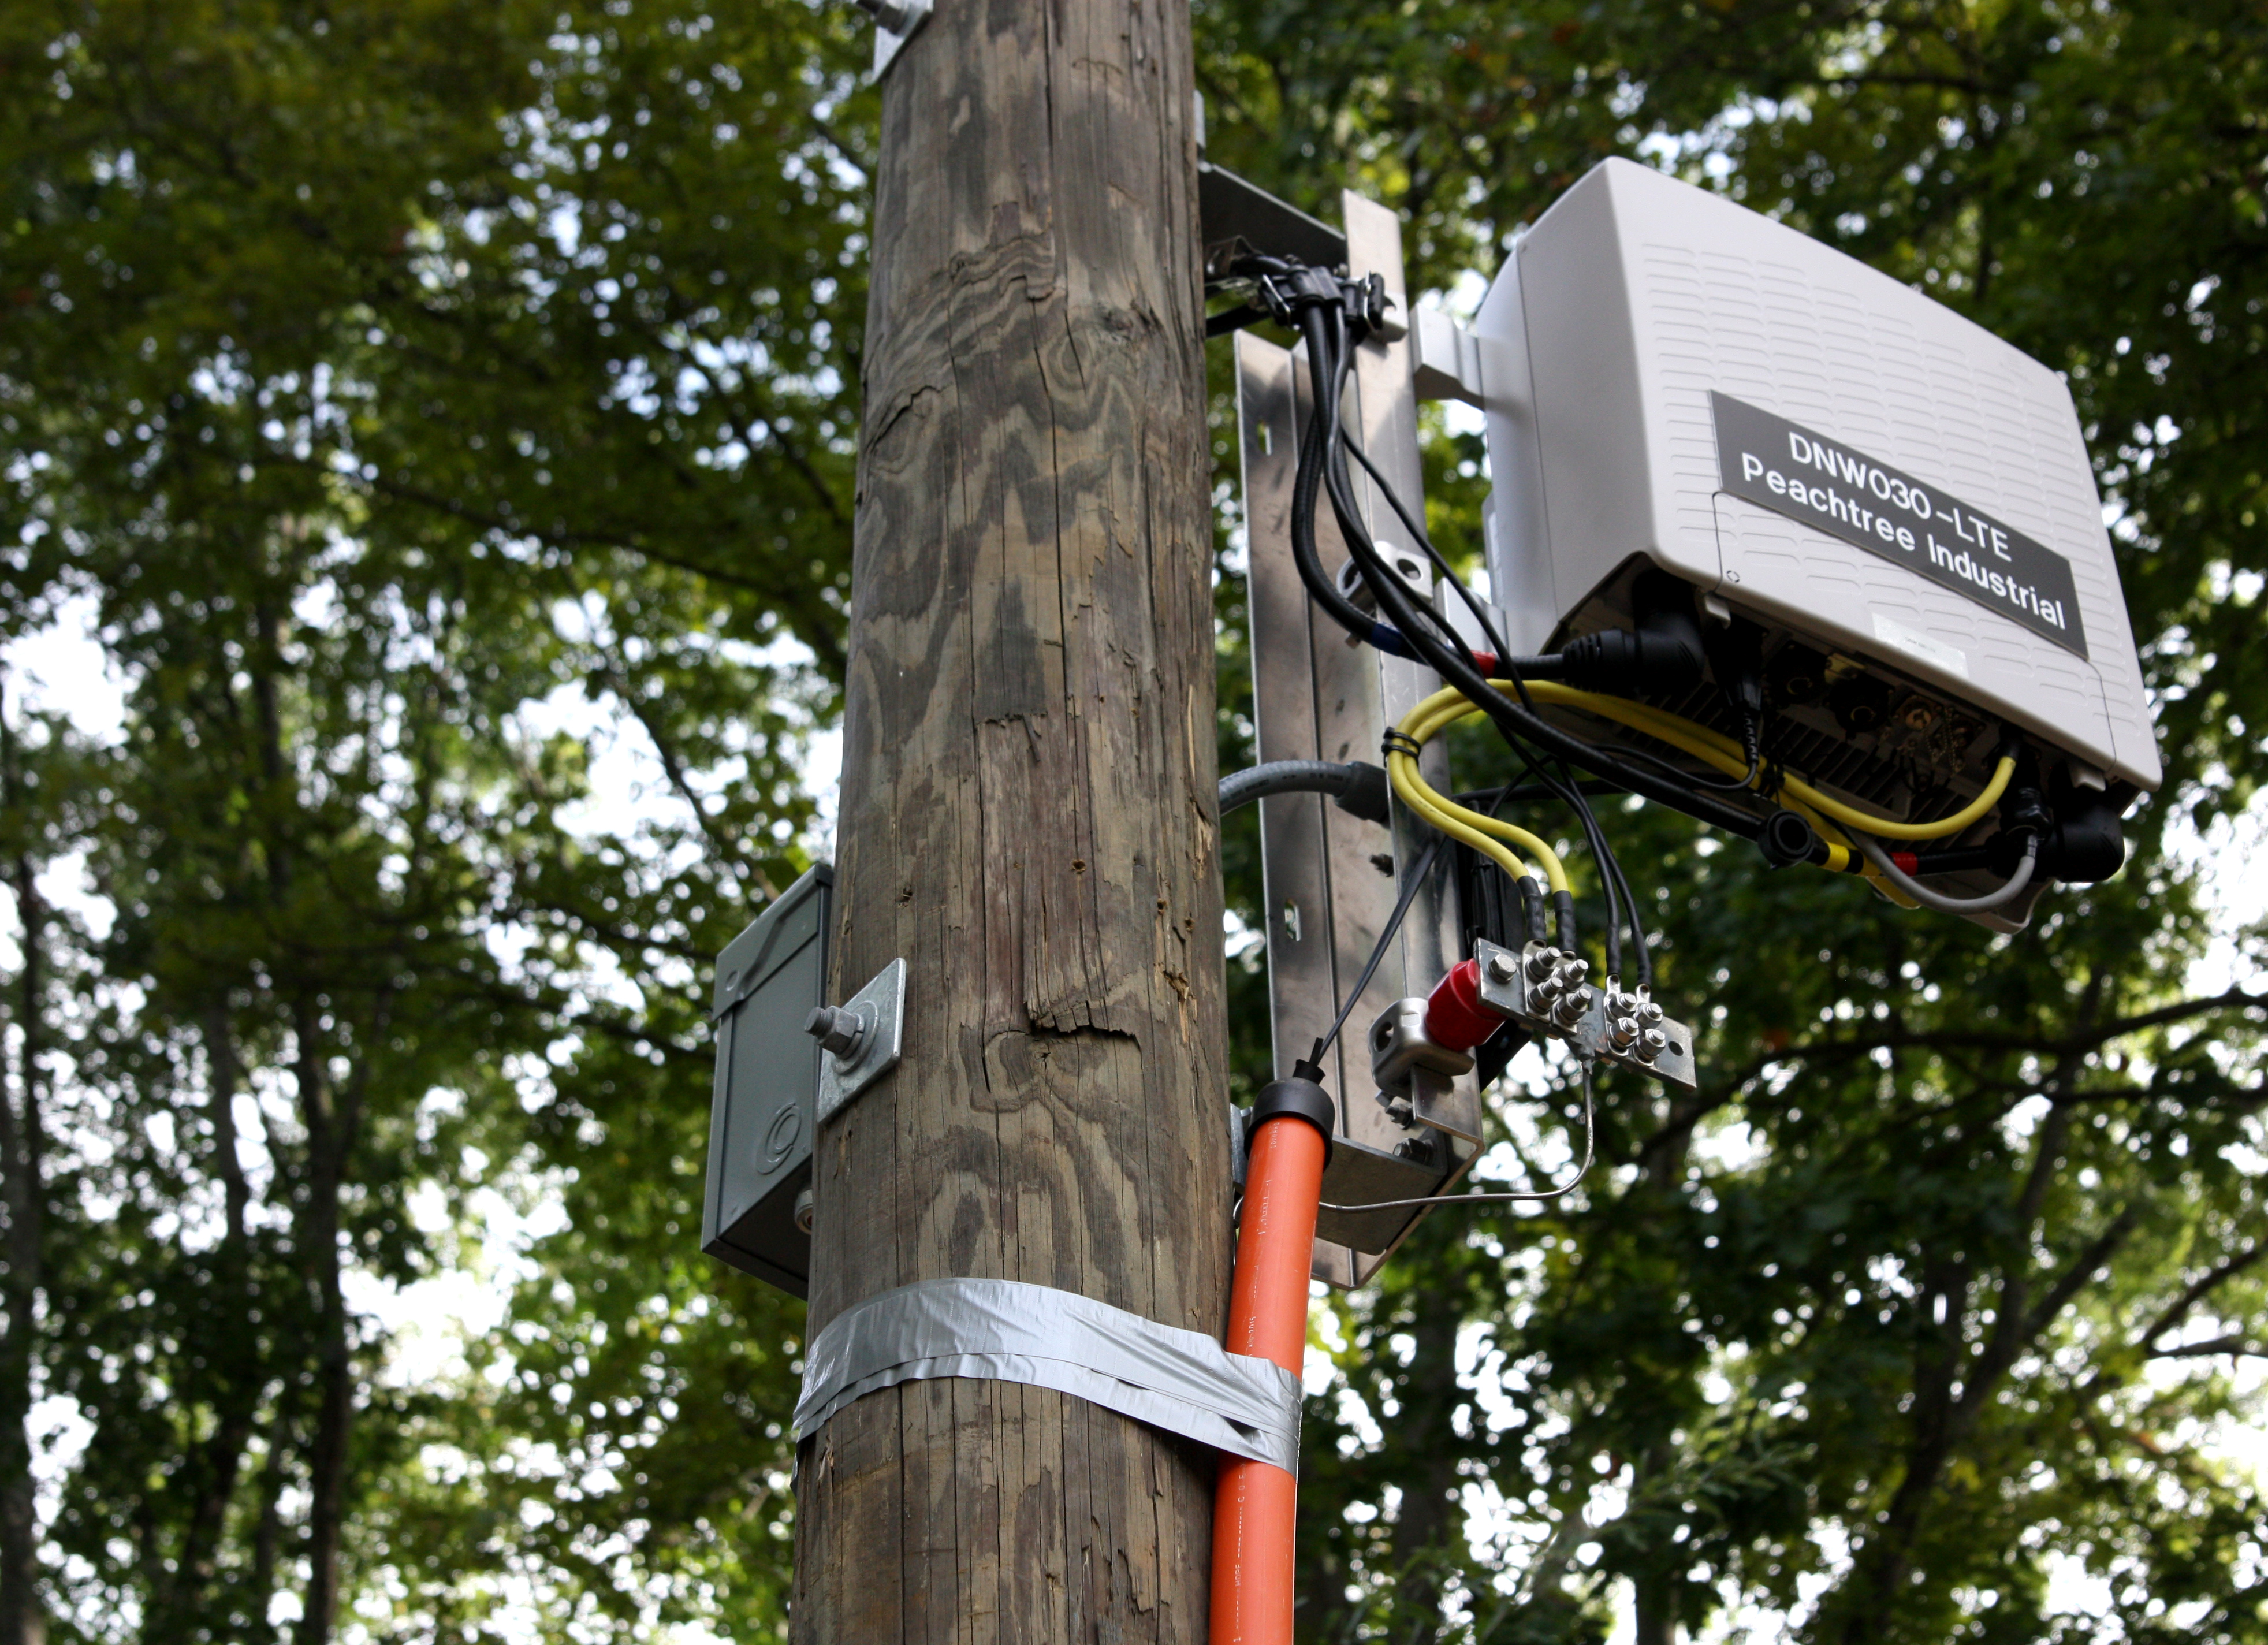 Dunwoody City Council questions ability to regulate small cell